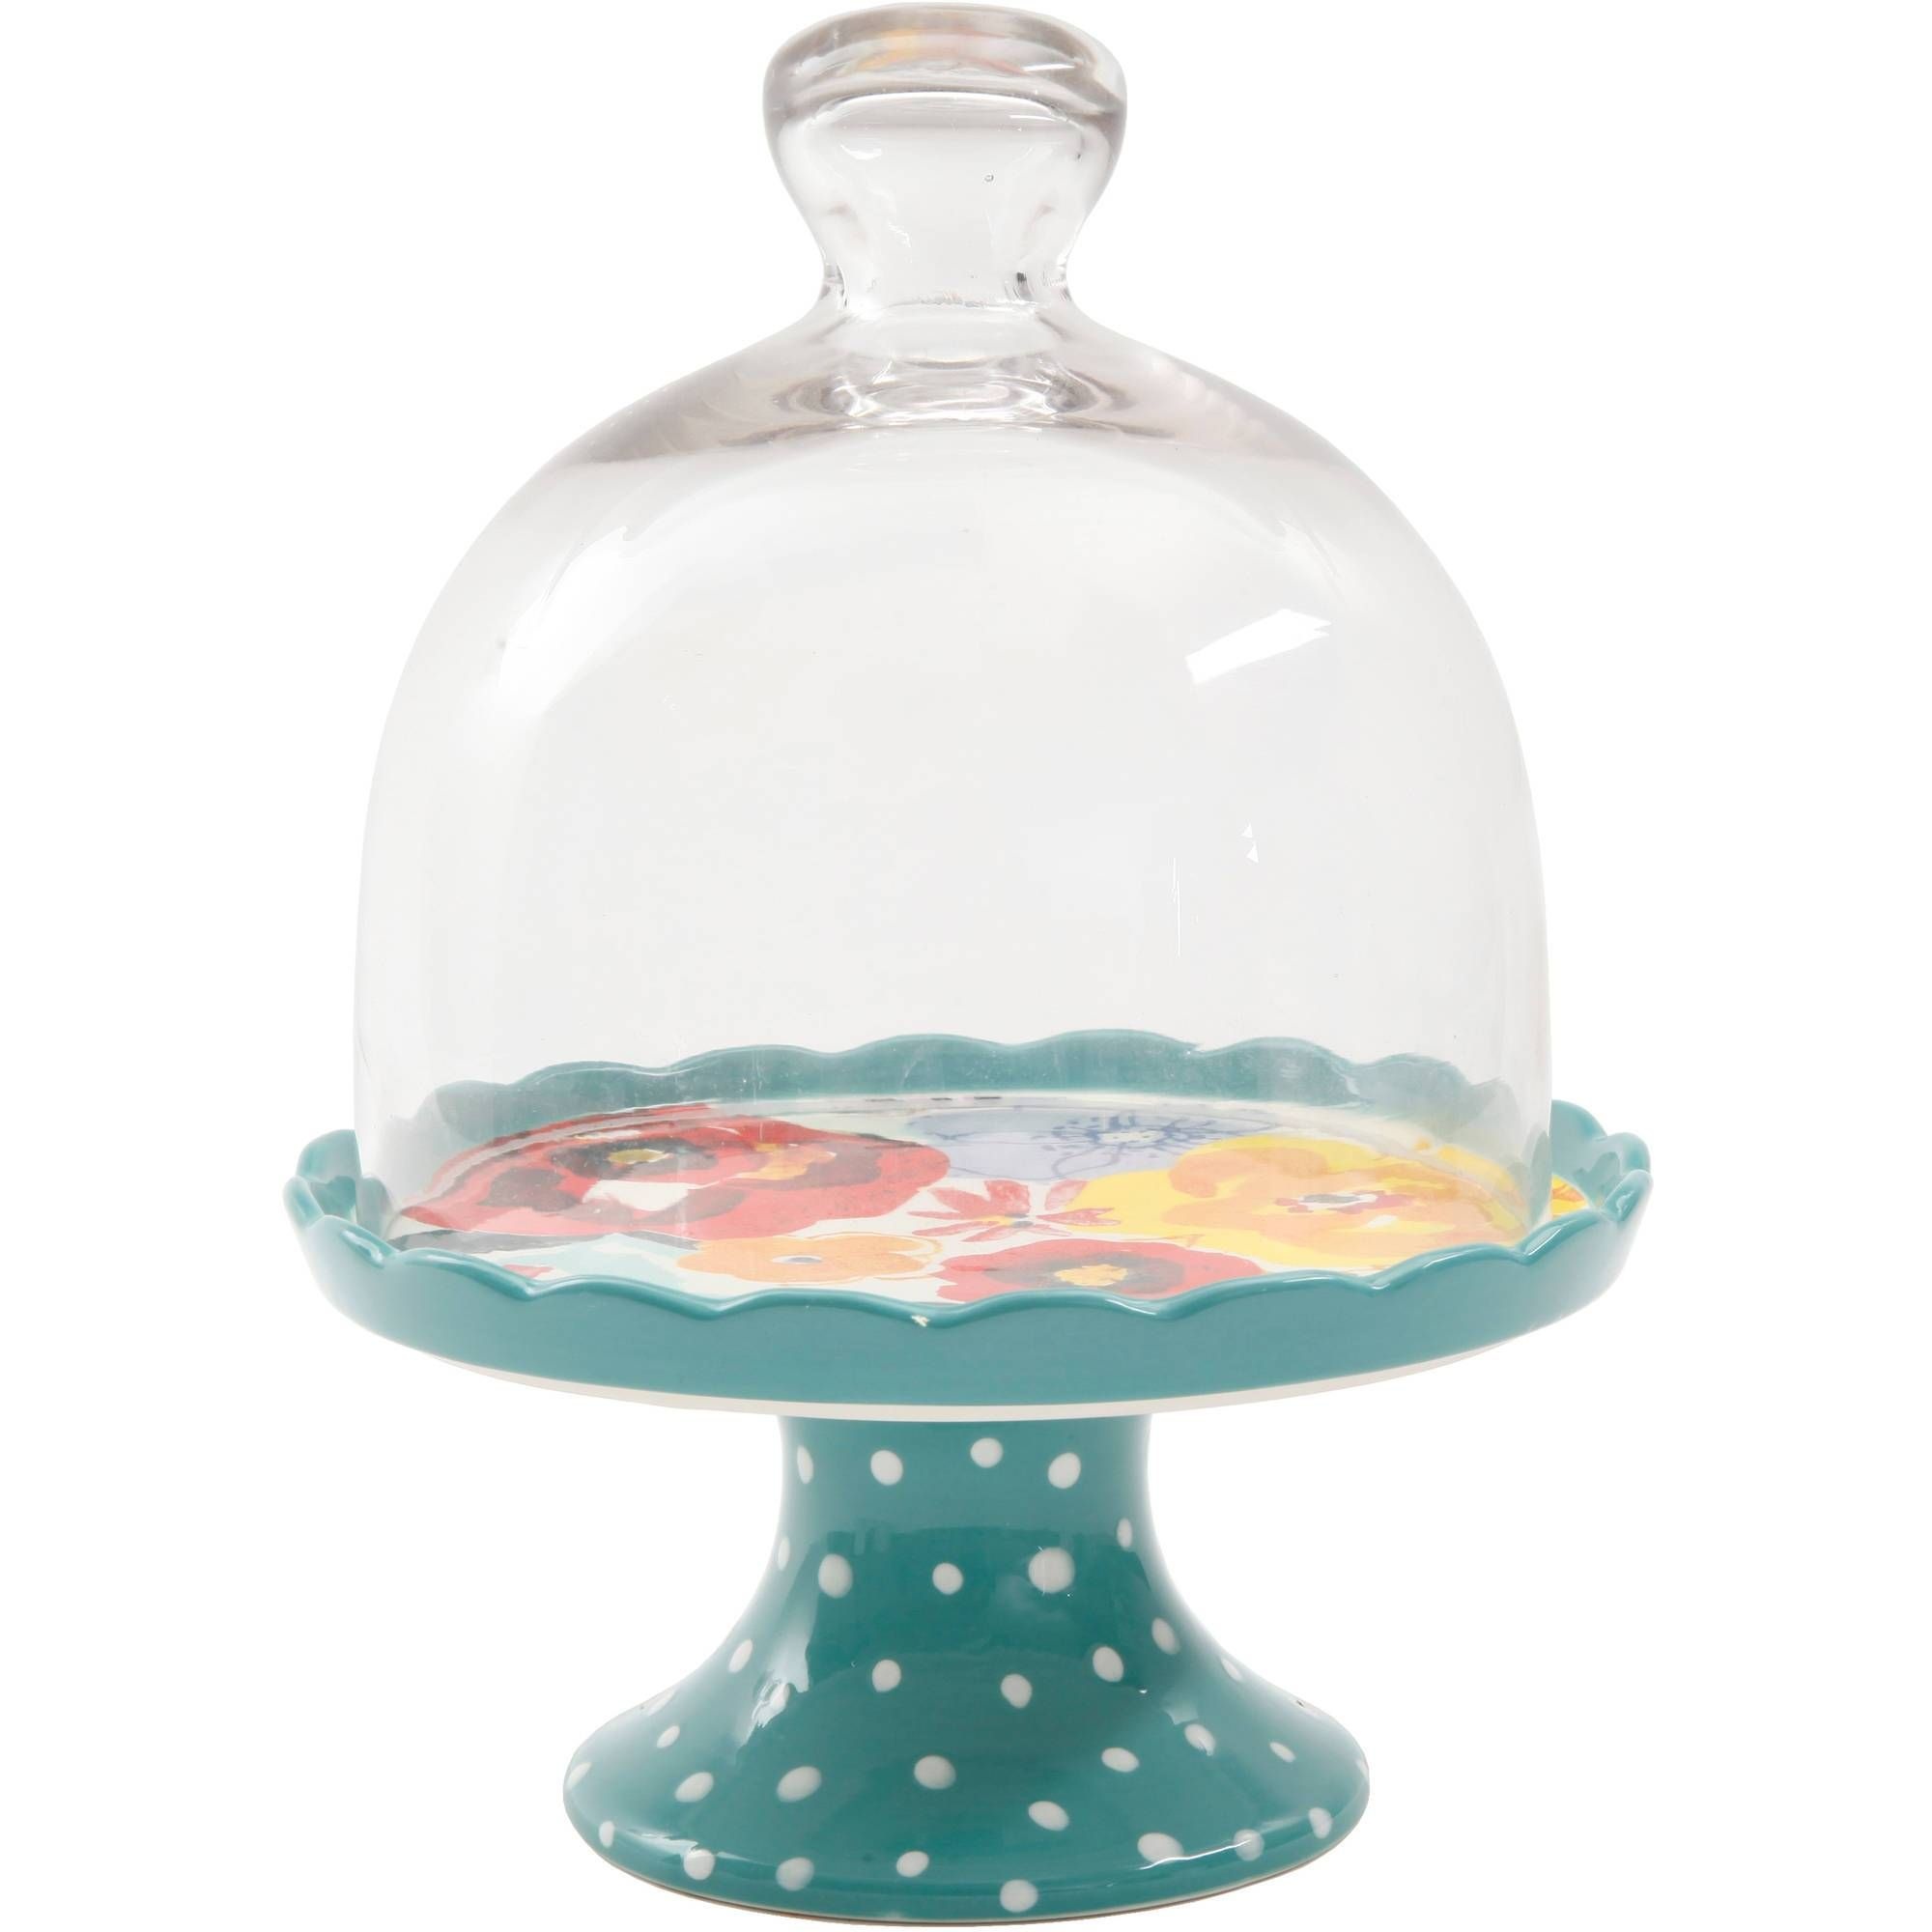 12+ Blue cake stand with lid ideas